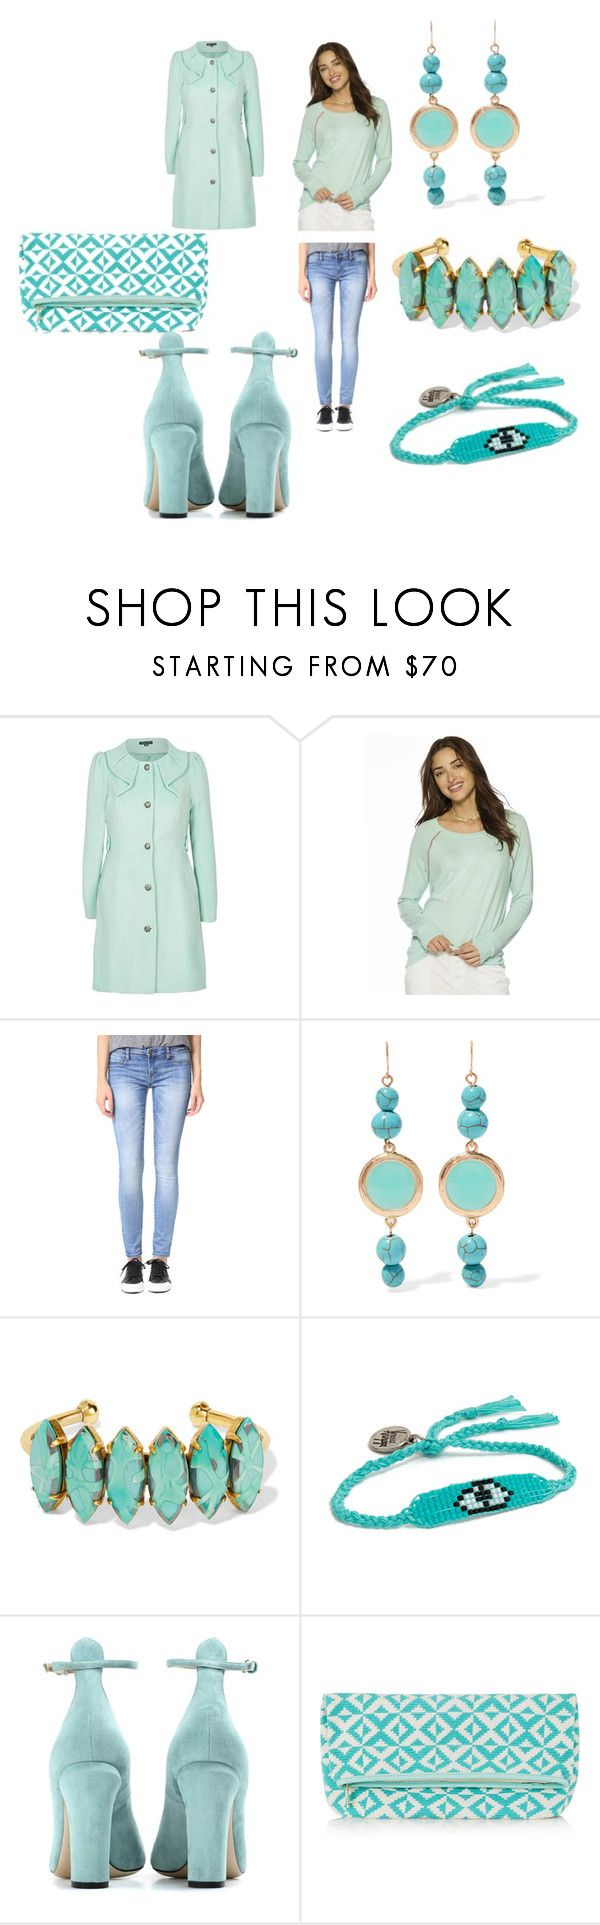 """Elegant"" by jamuna-kaalla ❤ liked on Polyvore featuring City Chic, Peace Love World, Blank Denim, Kenneth Jay Lane, Elizabeth Cole, Venessa Arizaga, Valentino and Sophie Anderson"